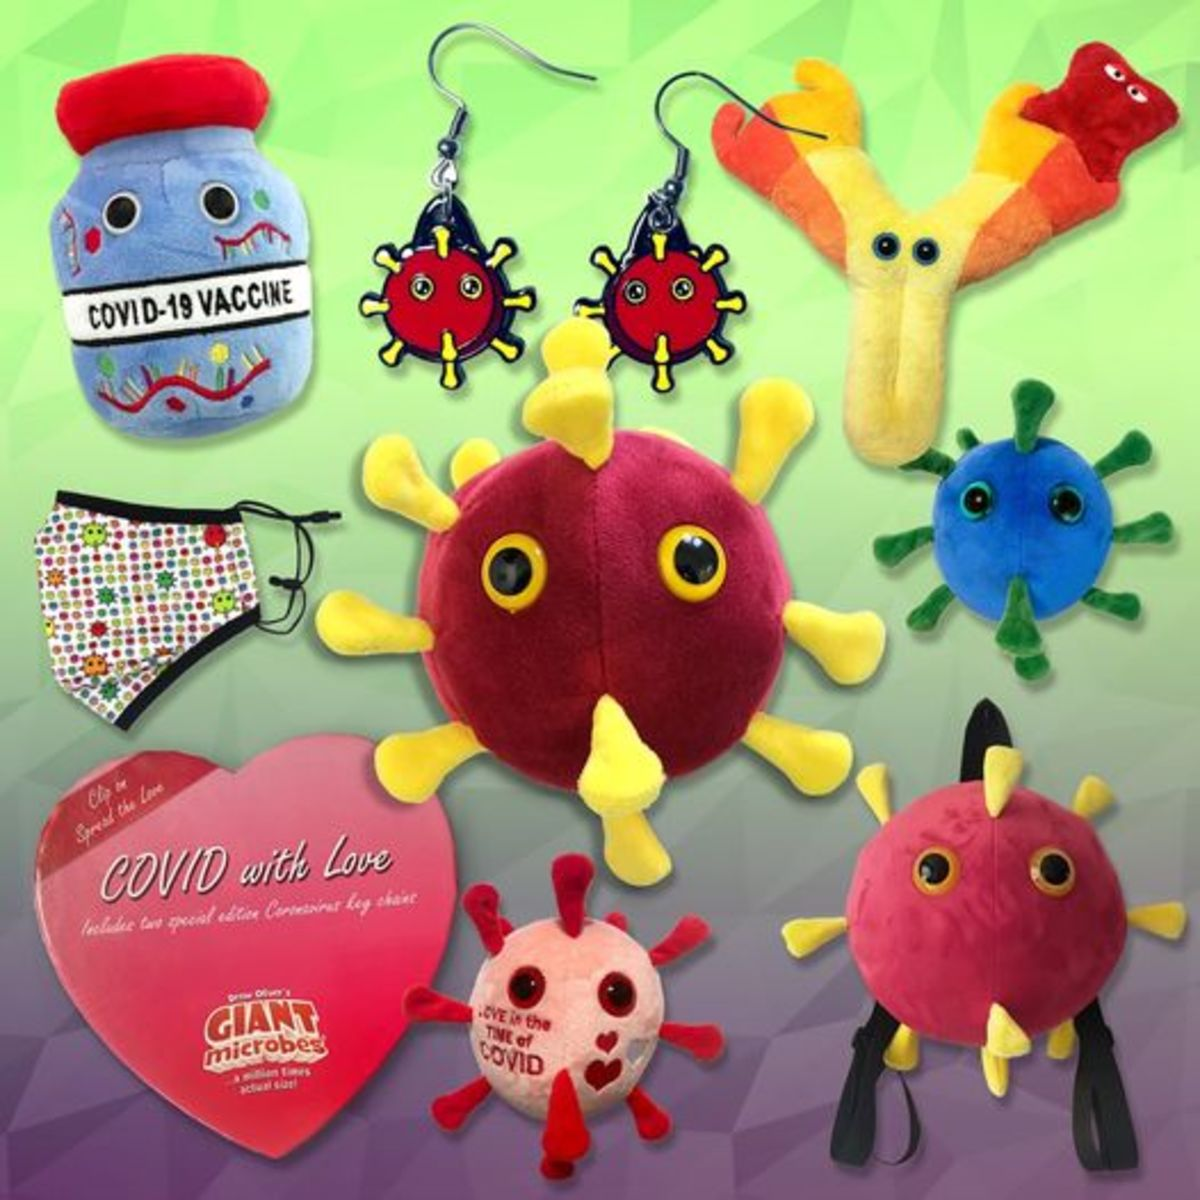 Giant Microbes Covid-19 collectibles, bizarre toys based on actual microbes